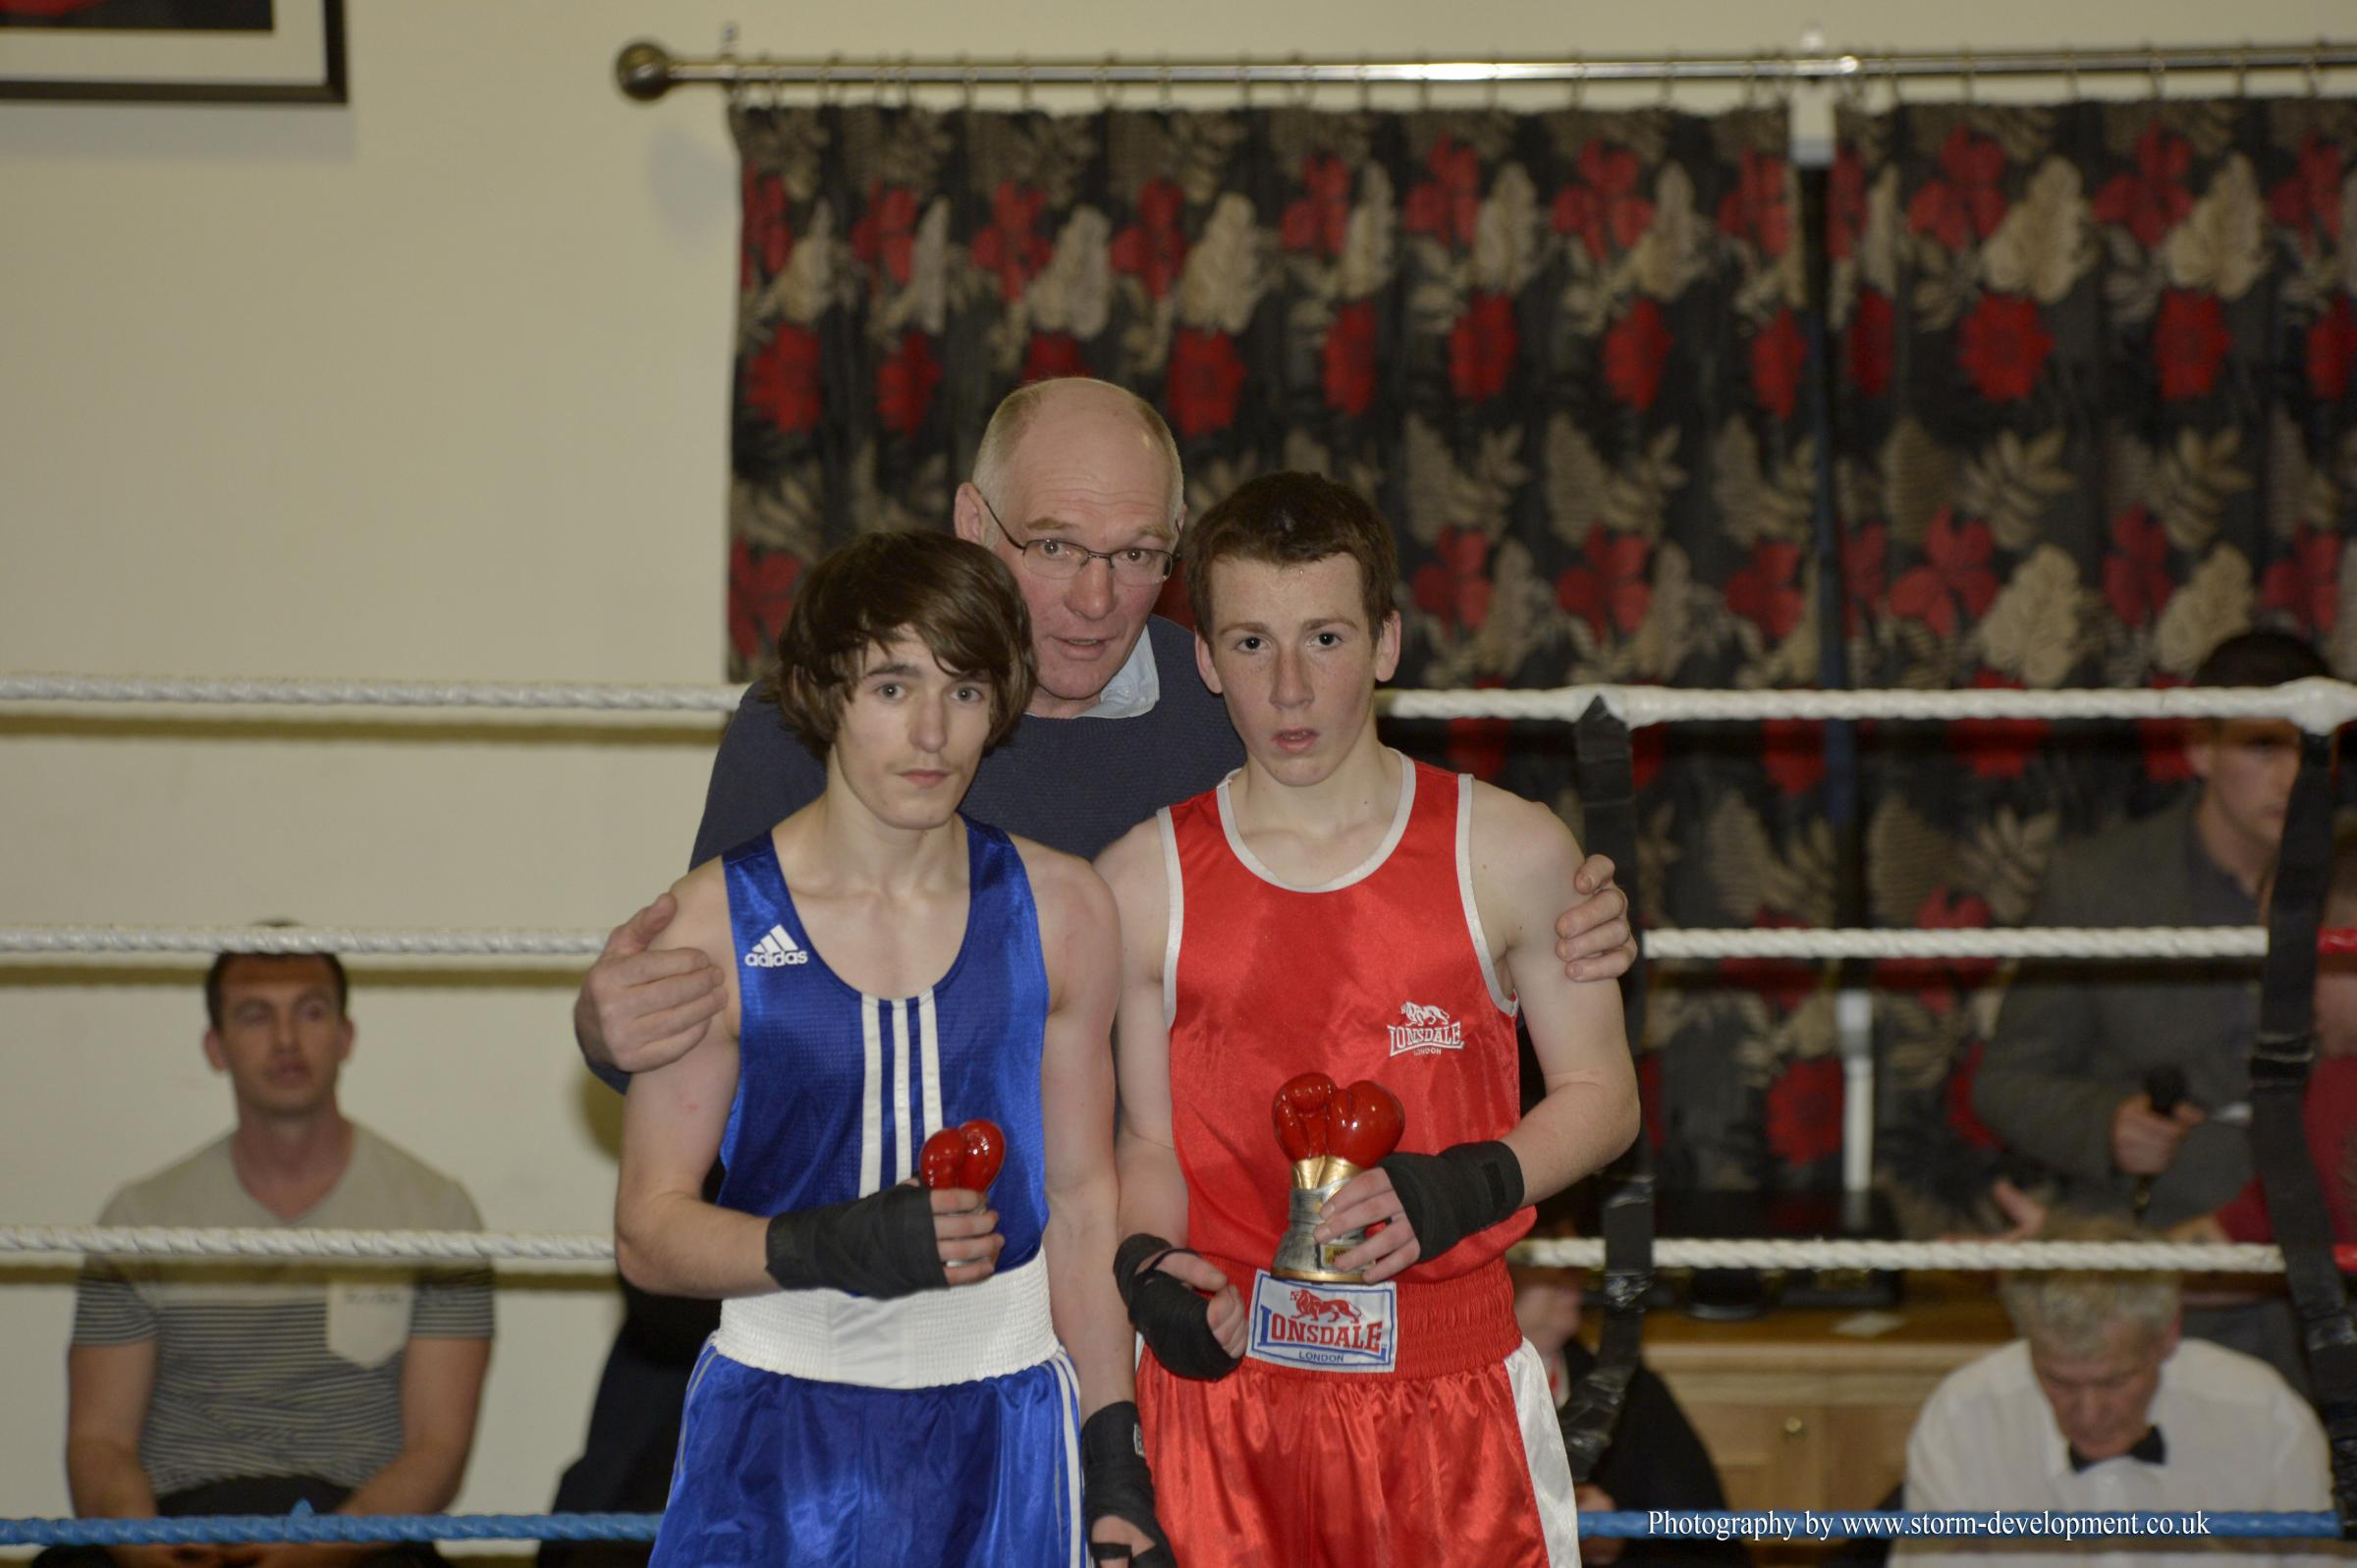 TABLES TURNED: Cardigan boxer Emyr Simmons (red shirt) is pictured with Bridgend opponent Bradley Pearce and Cardigan ABC president Chris Lawson. Photo courtesy of www.storm-development.co.uk